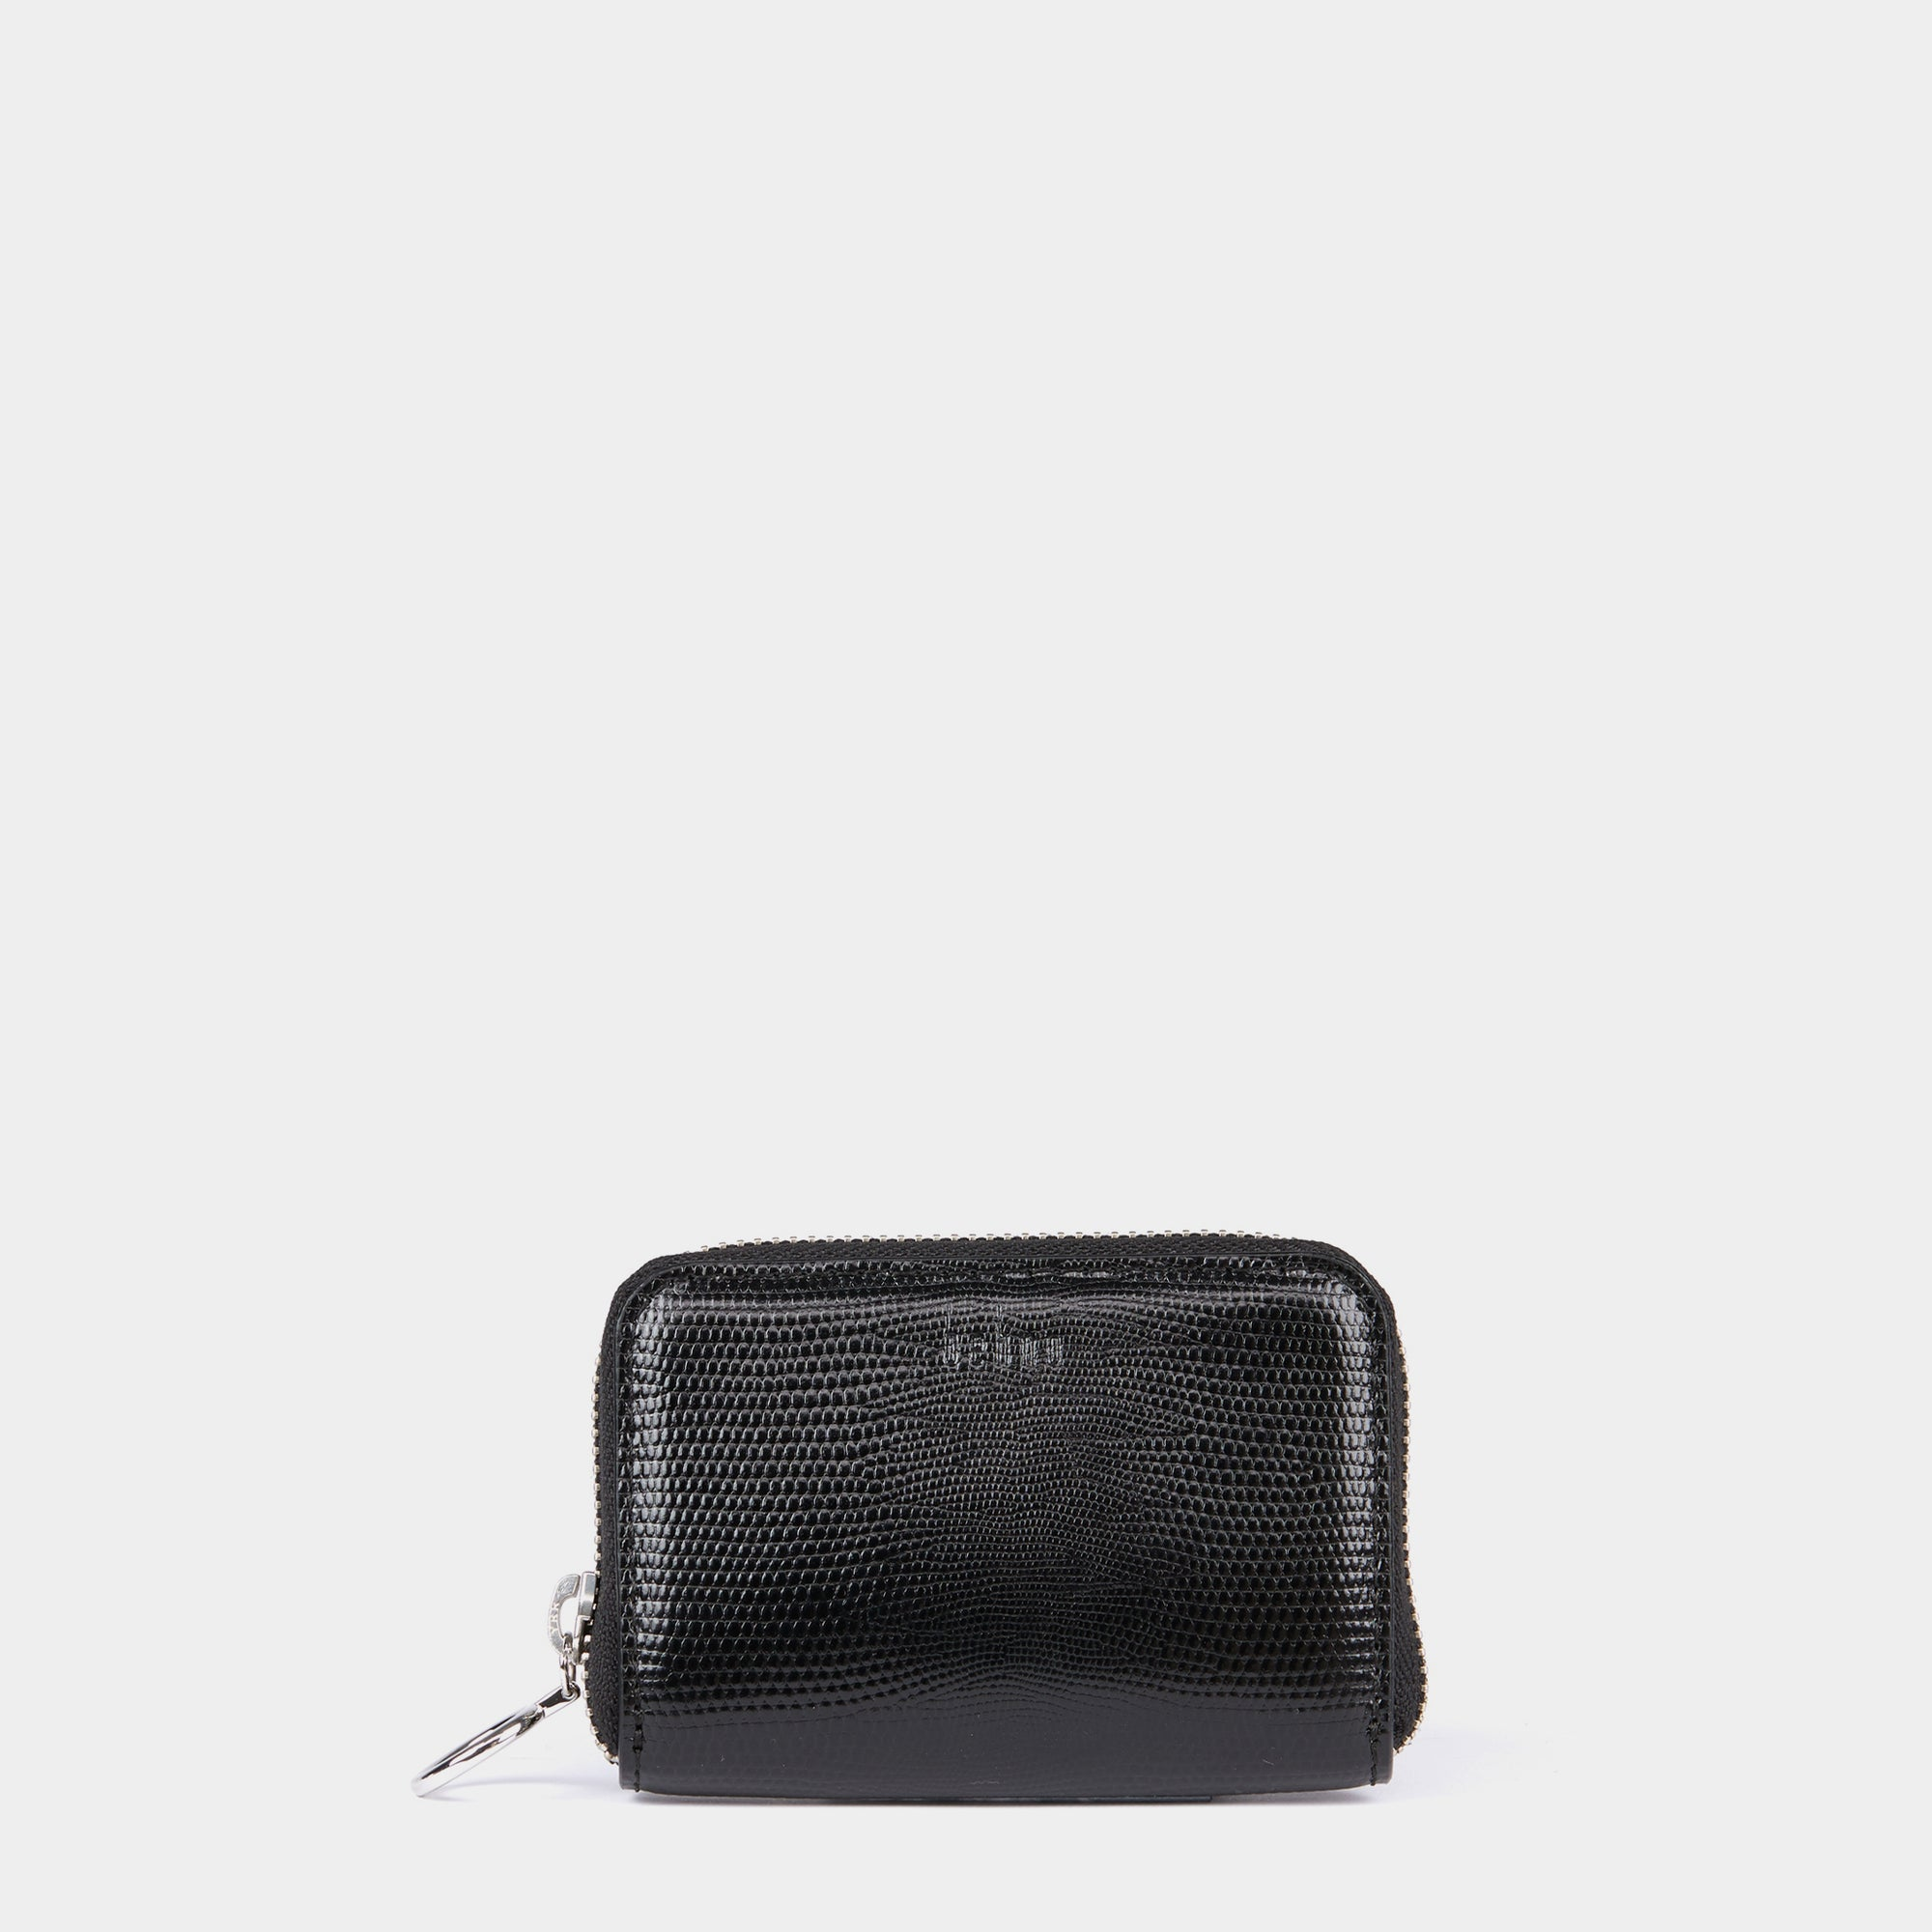 DEVON WALLET LIZARD BLACK